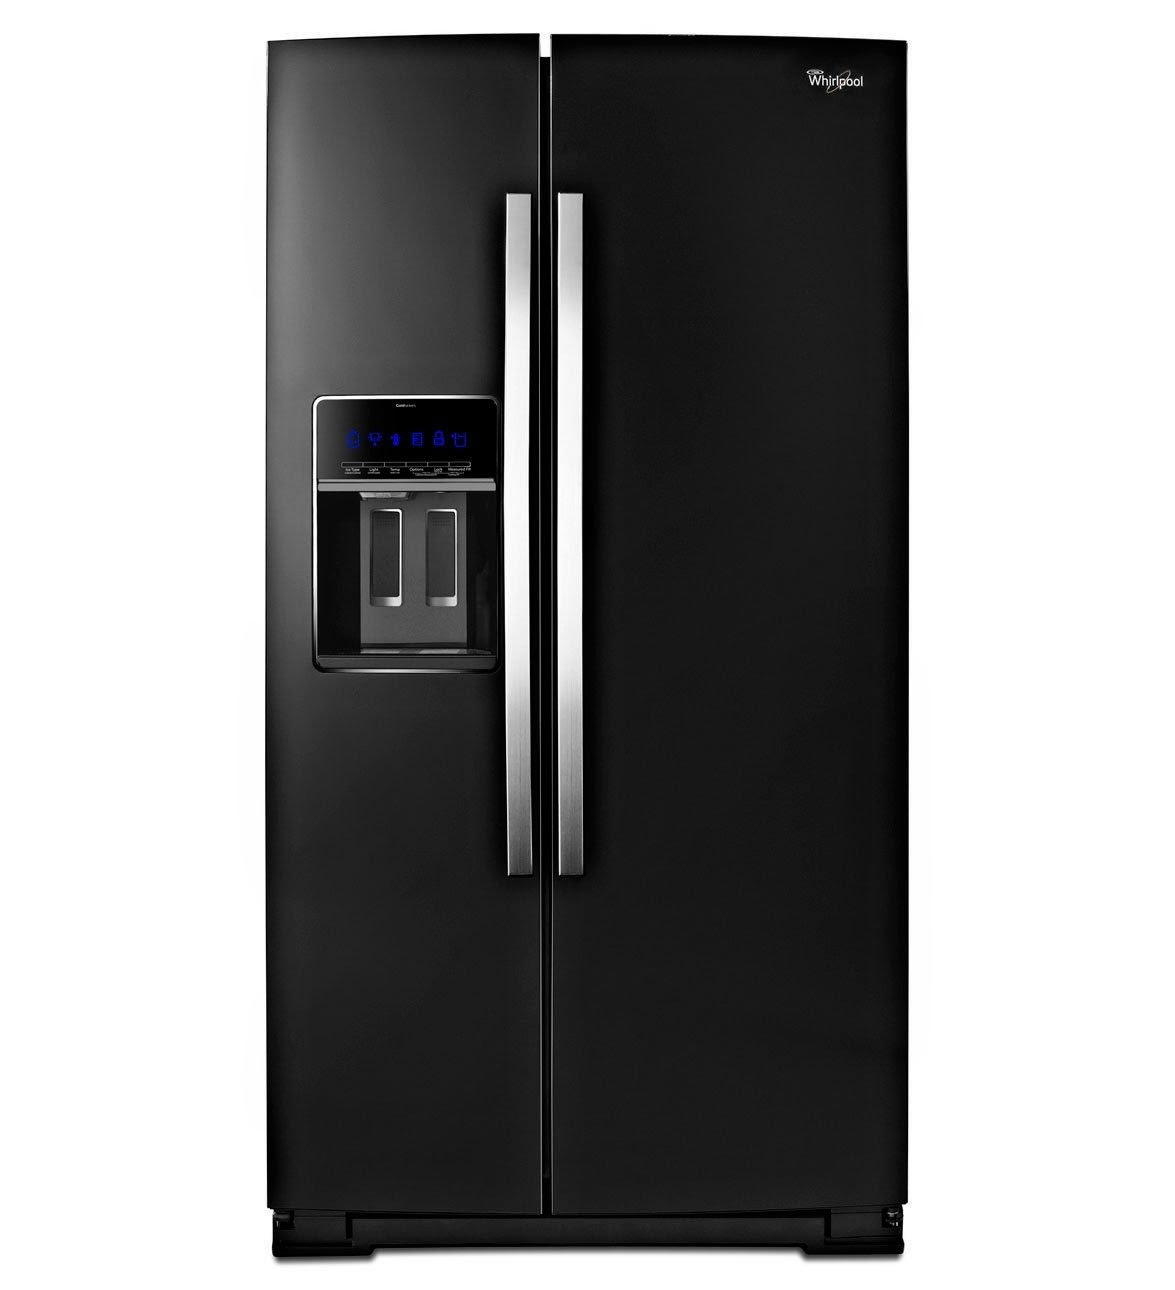 whirlpool refrigerators whirlpool counter depth refrigerators. Black Bedroom Furniture Sets. Home Design Ideas